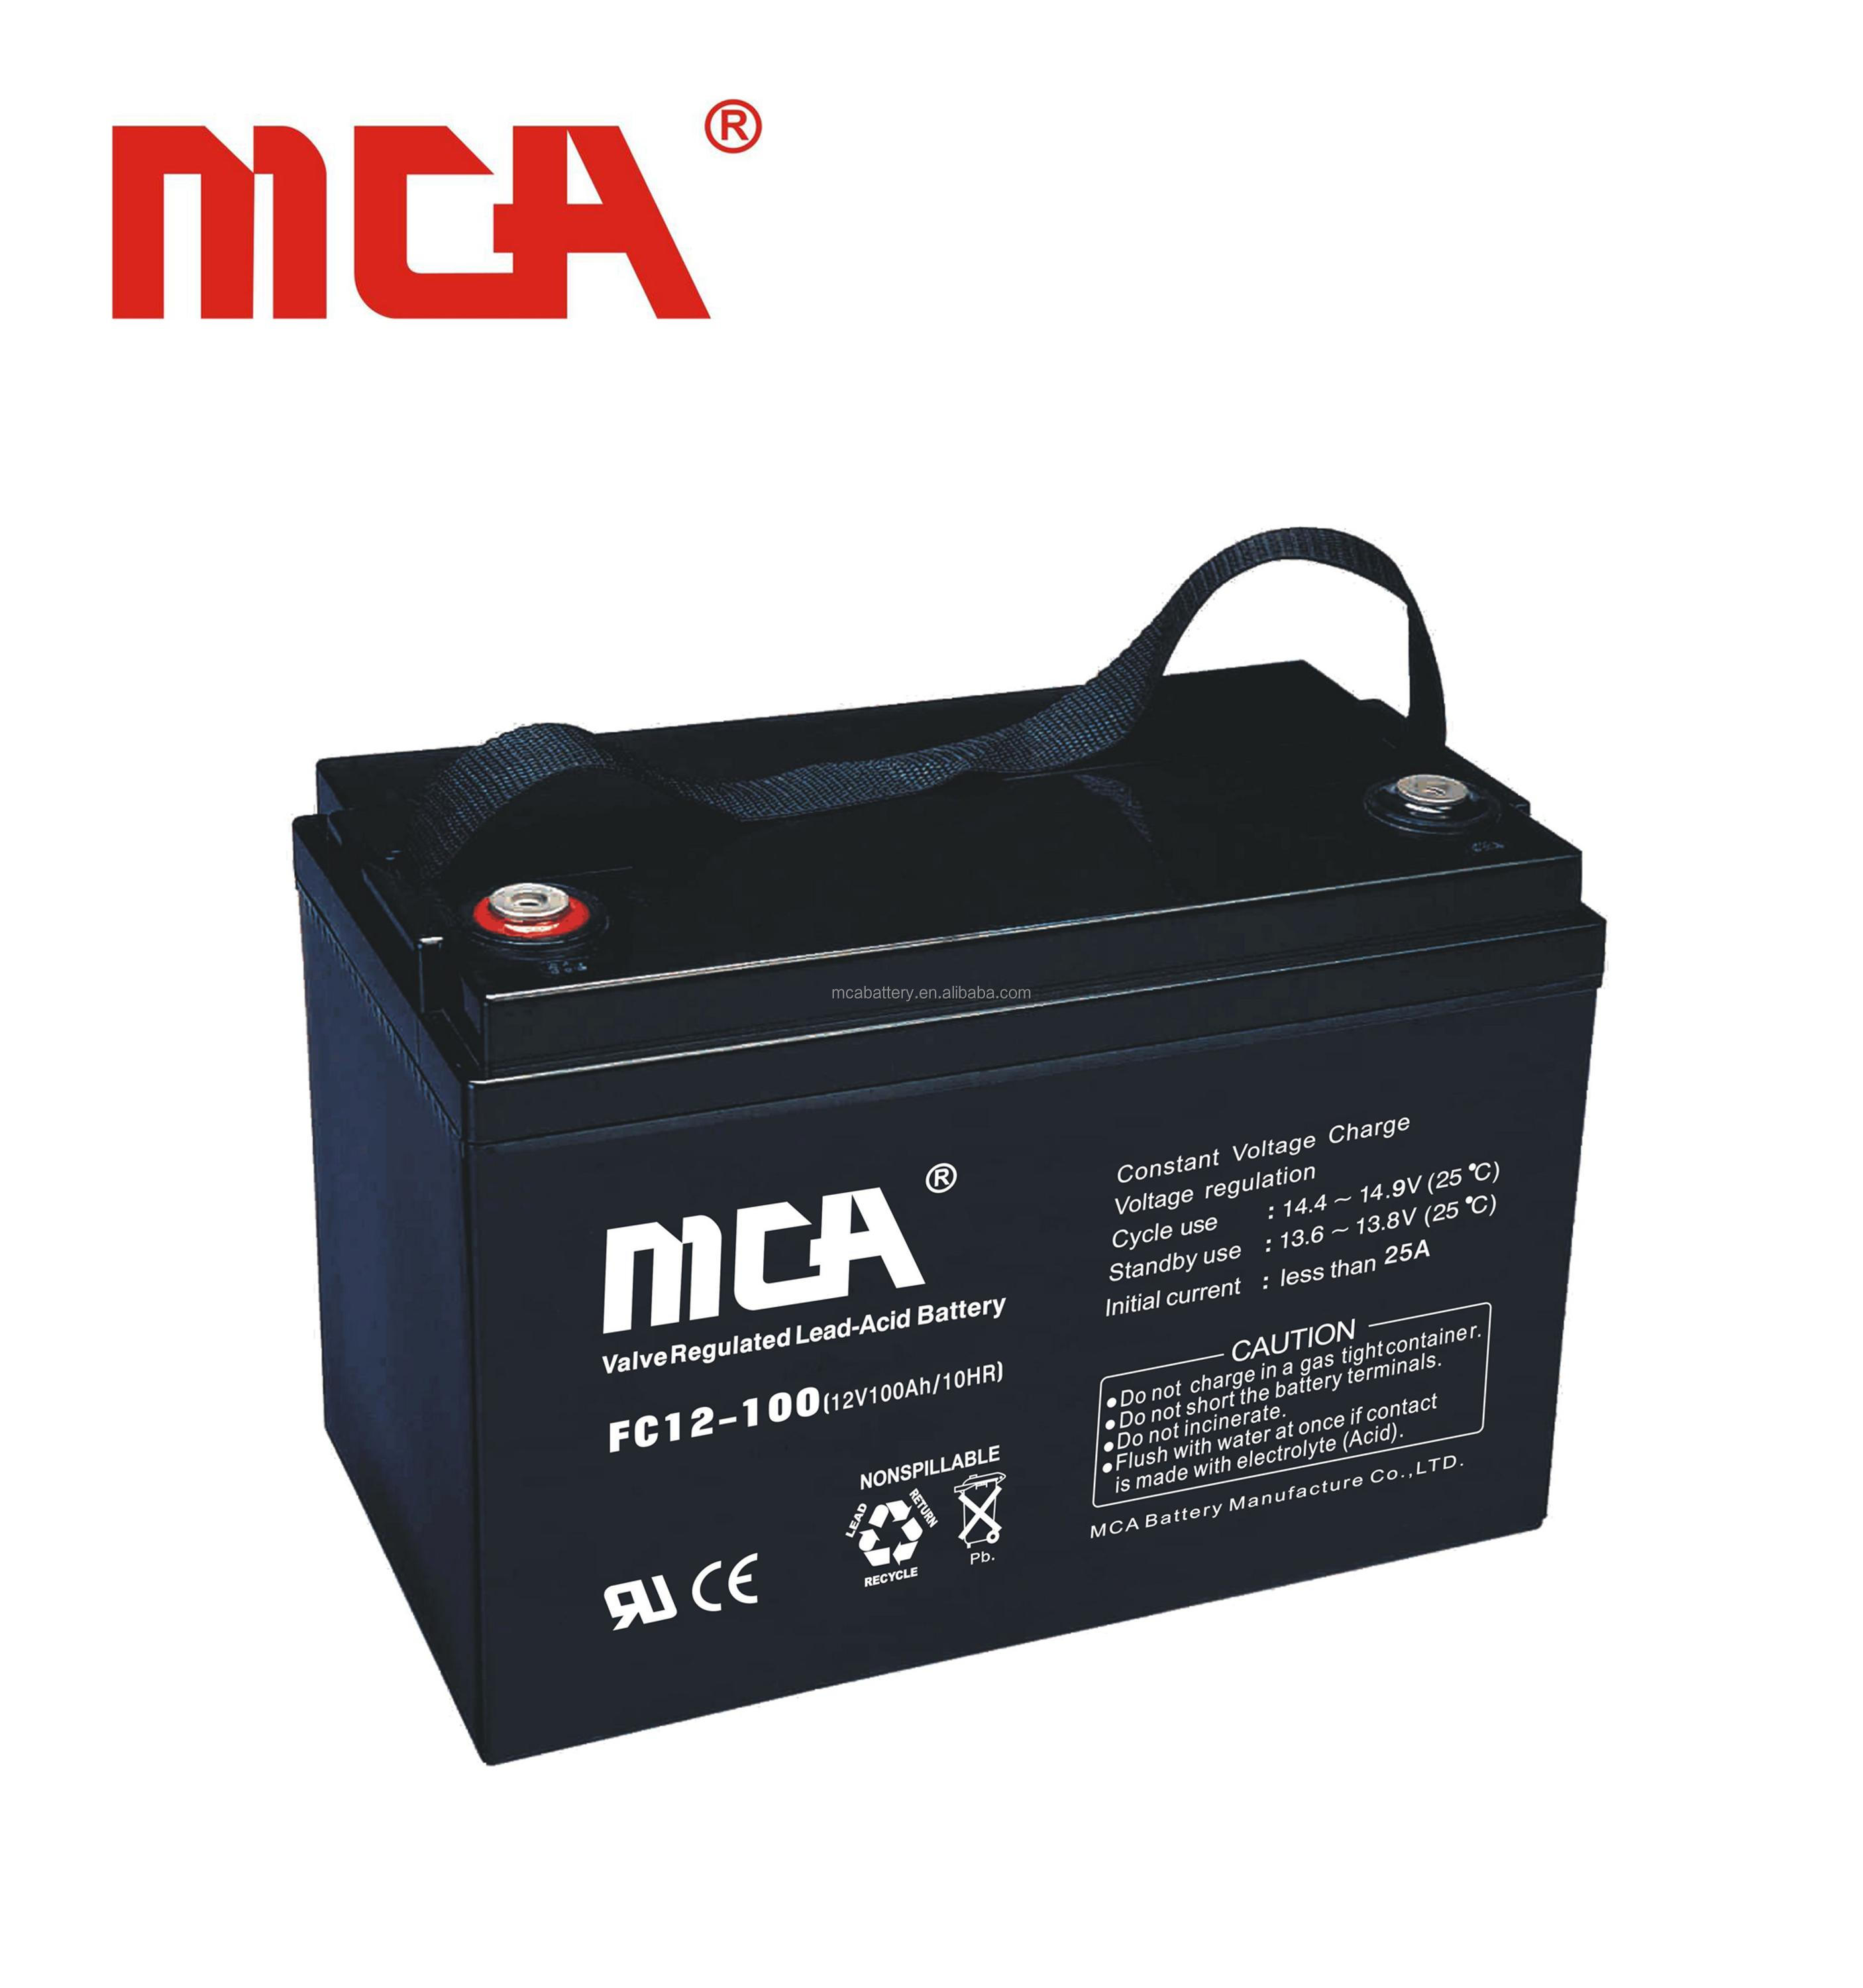 24 Volt Marine Battery >> New Launch Product 24 Volt 100ah Marine Battery 12v Ups Battery Prices In Pakistan For Solar Buy 24 Volt 100ah Marine Battery 12v Ups Battery Prices